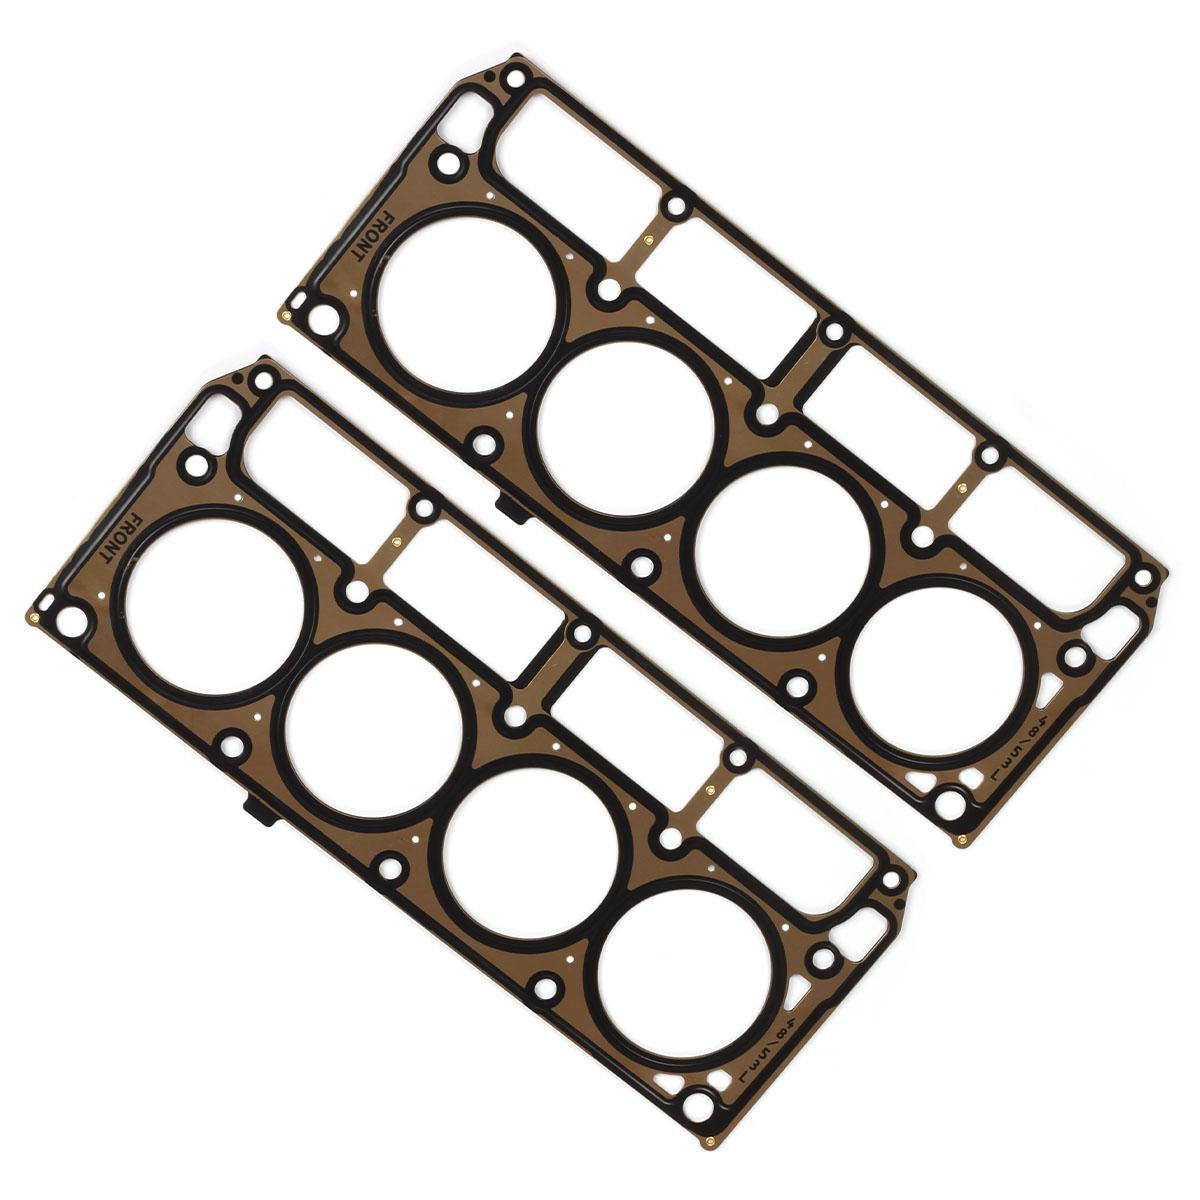 Mls Head Gaskets Fits Chevrolet Gmc Buick Cadillac 4 8 5